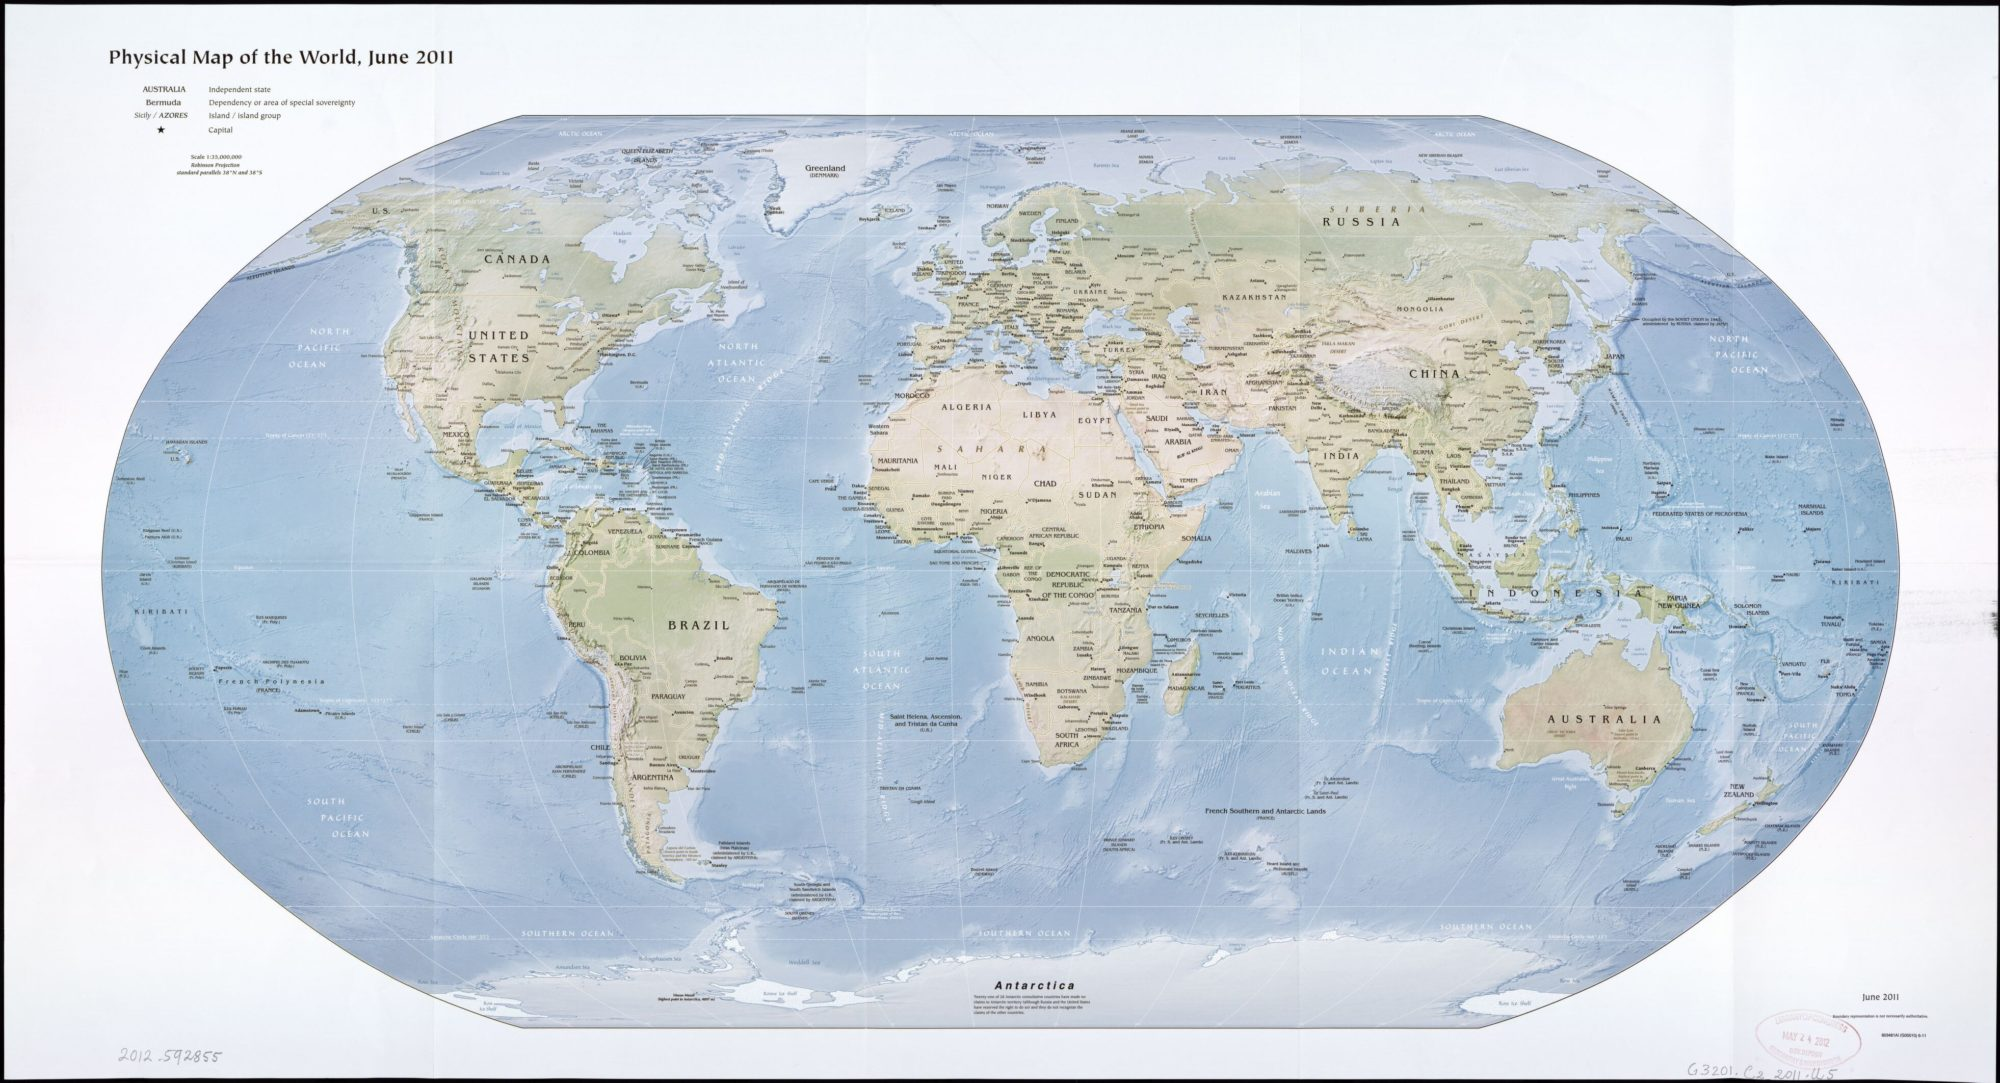 The World Physical Map  | June 2011 | Large, Printable Downloadable Map